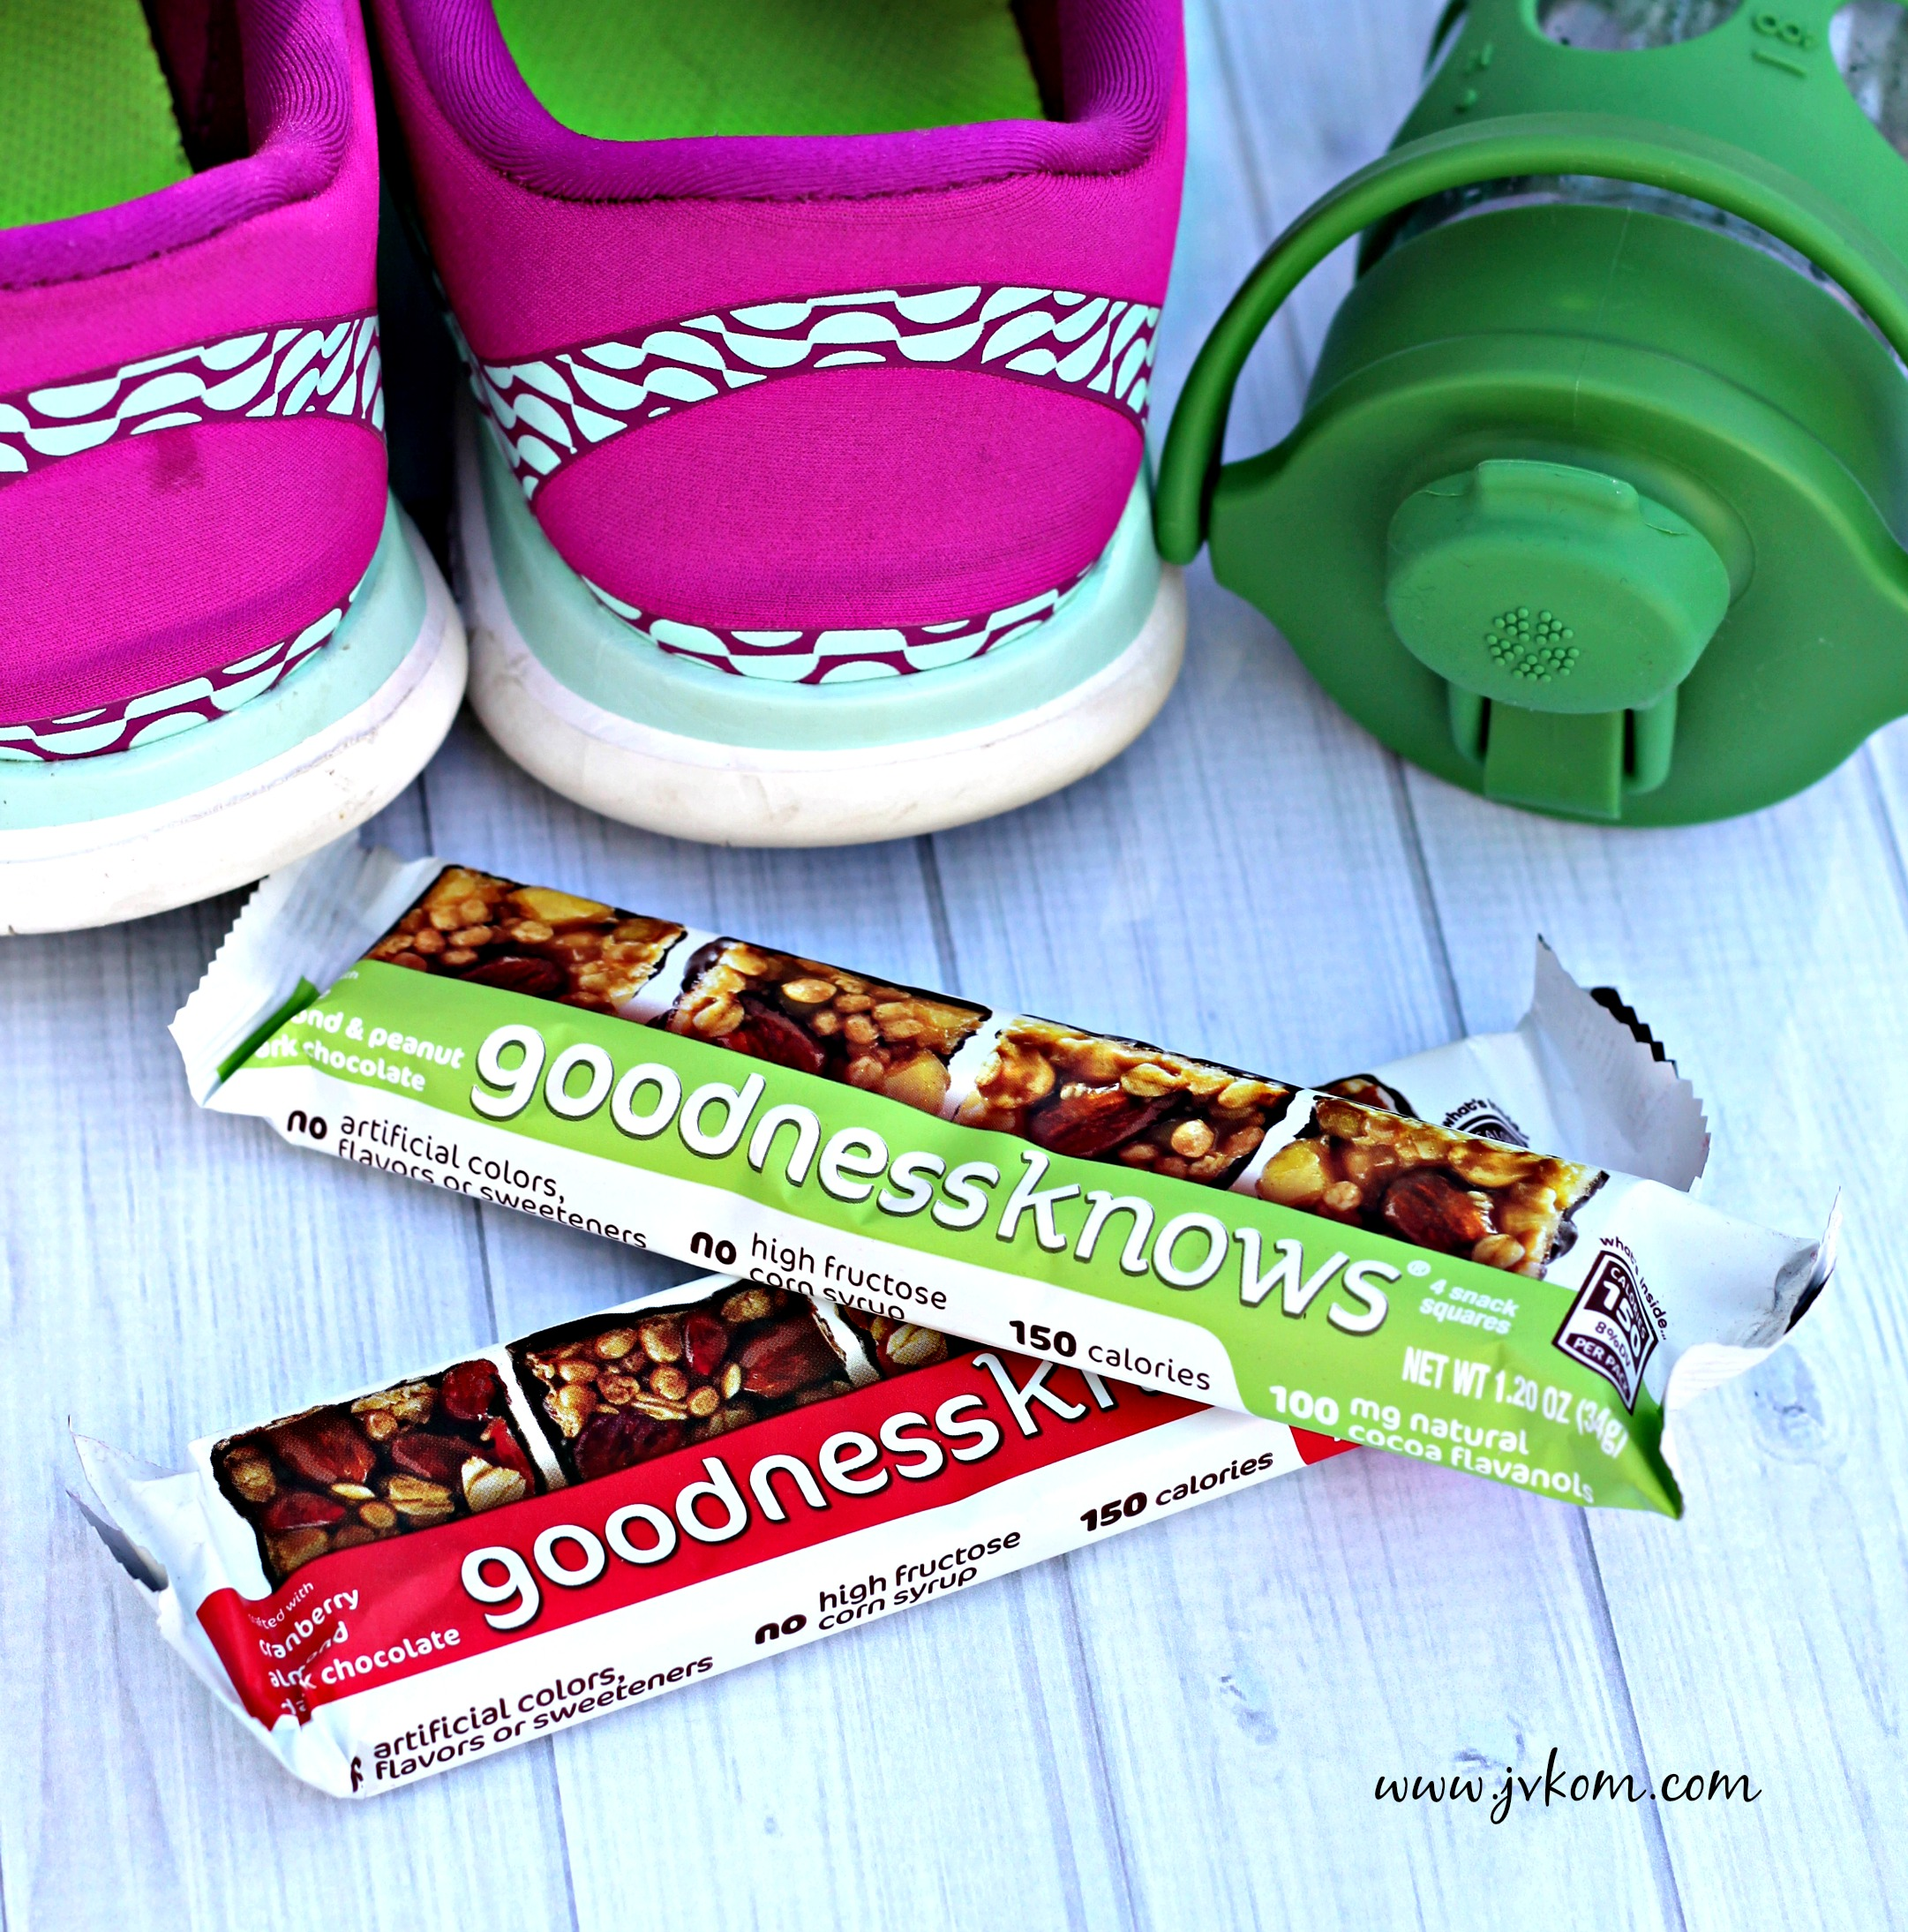 goodnessknows® is the perfect post workout snack. #TryALittleGoodness #ad #cbias